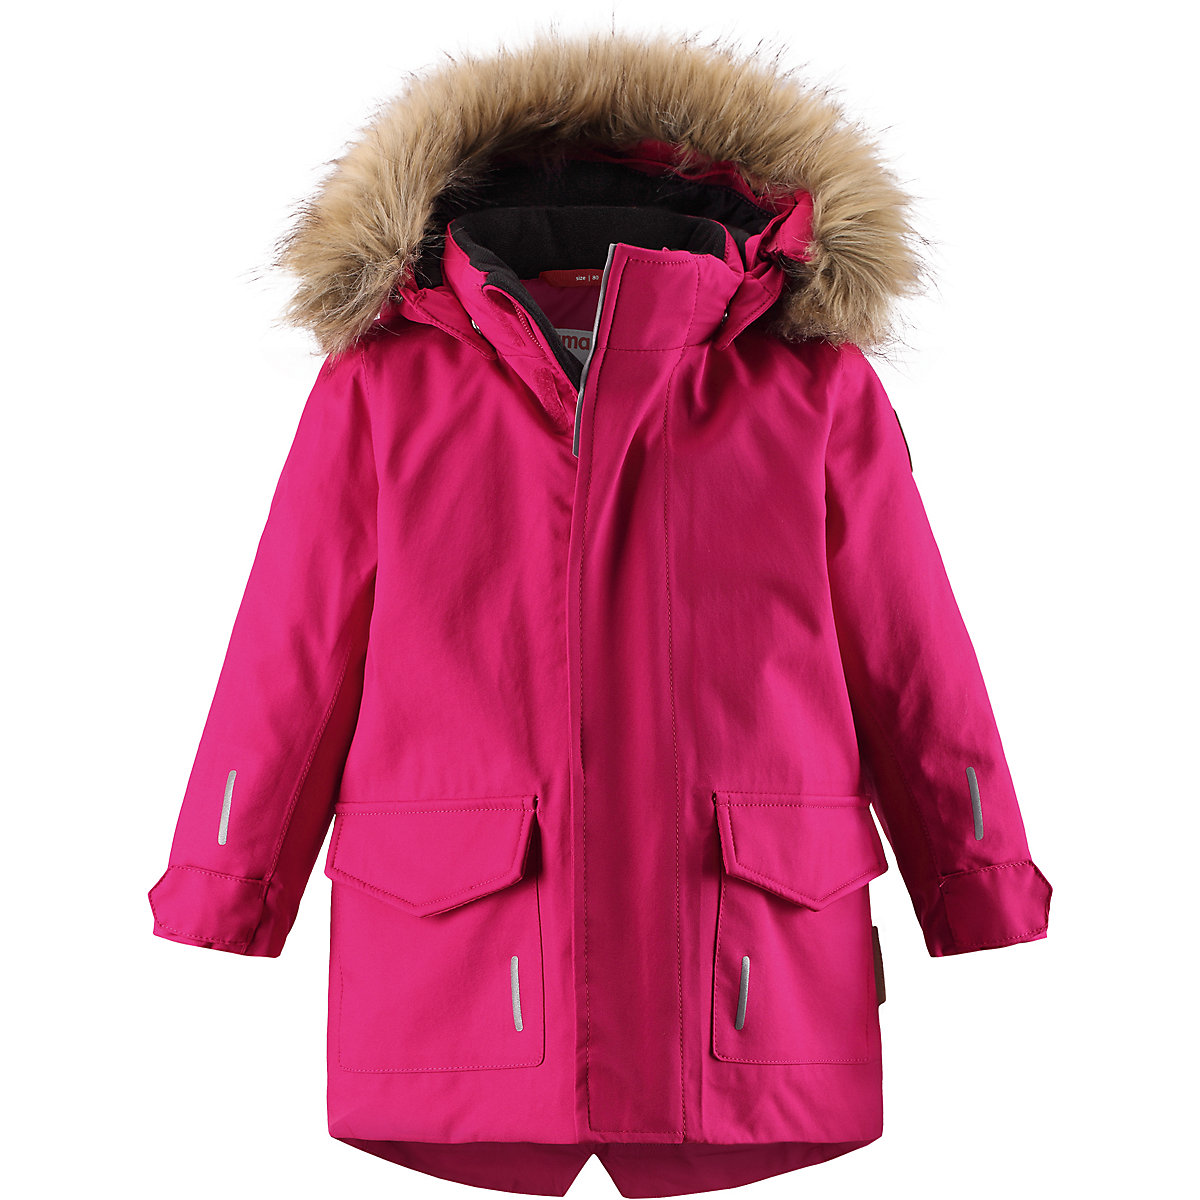 REIMA Jackets & Coats 8689313 for girls baby clothing winter warm boy girl jacket Polyester icebear 2018 fashion winter jacket men s brand clothing jacket high quality thick warm men winter coat down jacket 17md811